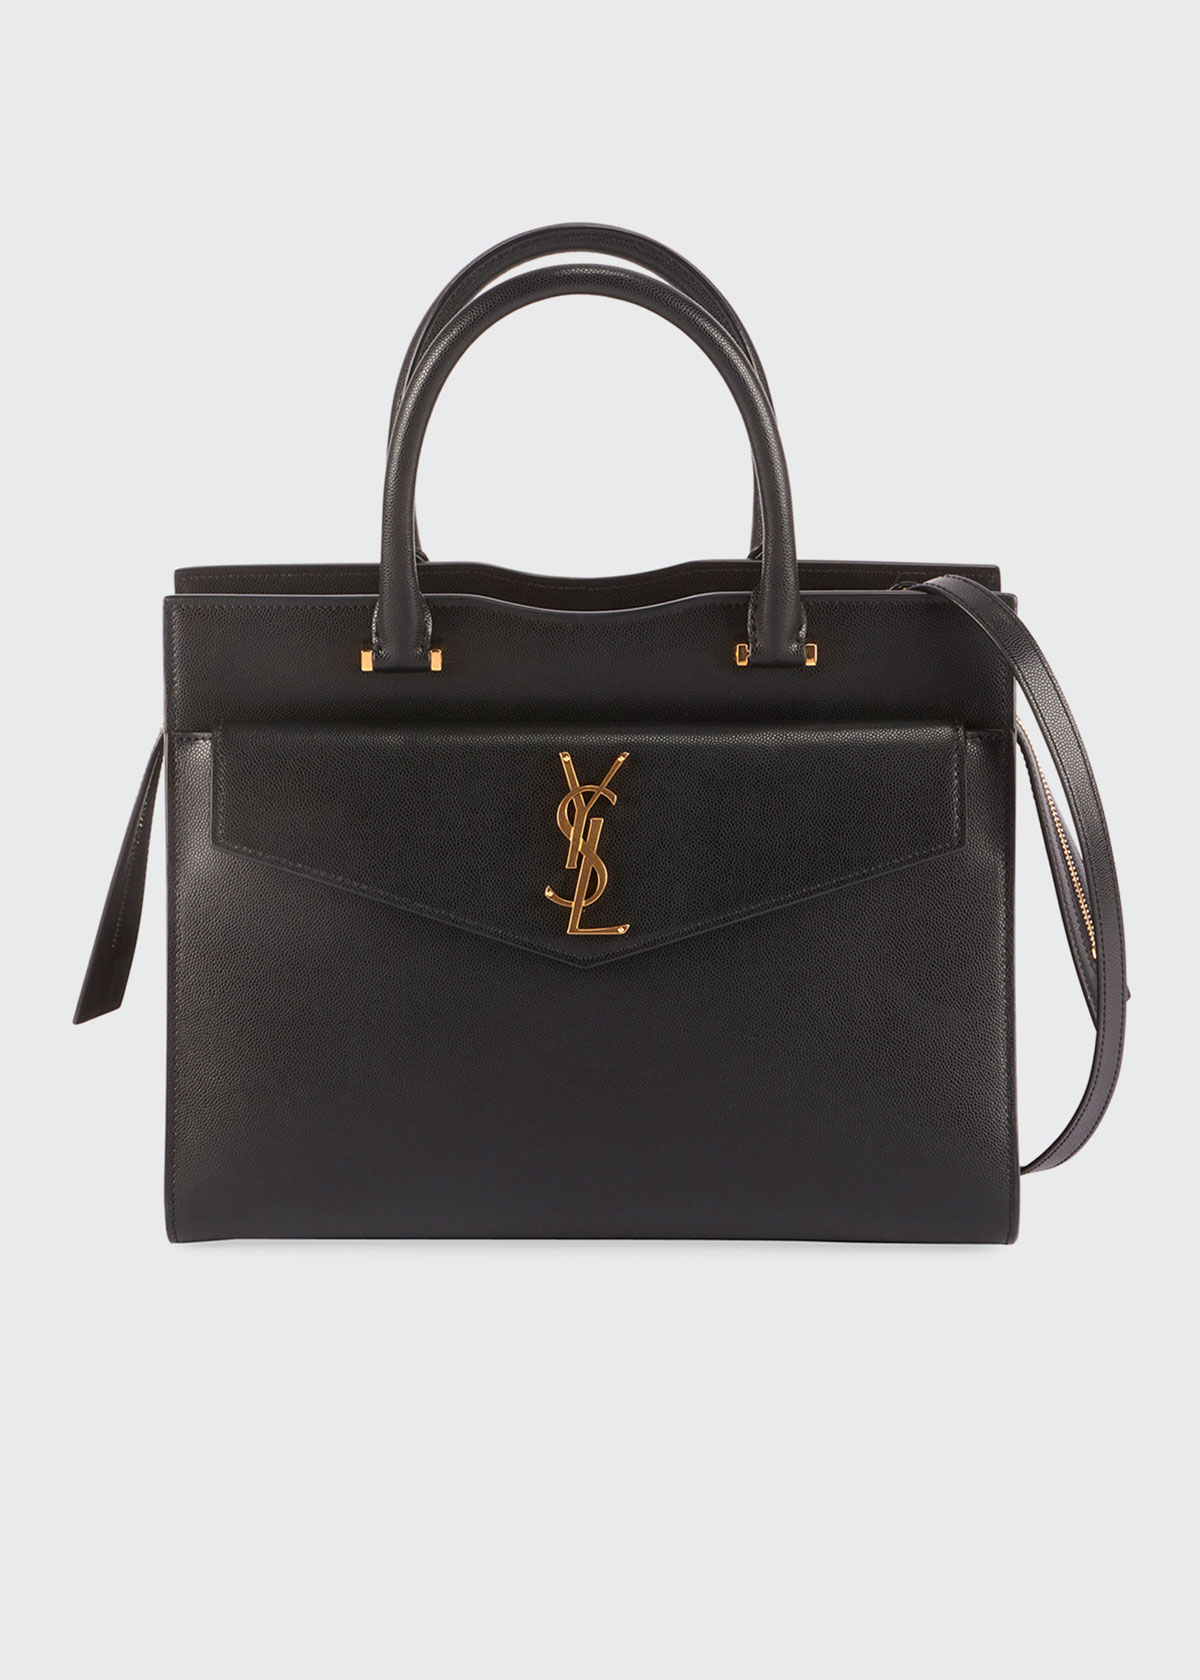 Saint Laurent Bags UPTOWN MEDIUM YSL LEATHER SATCHEL BAG